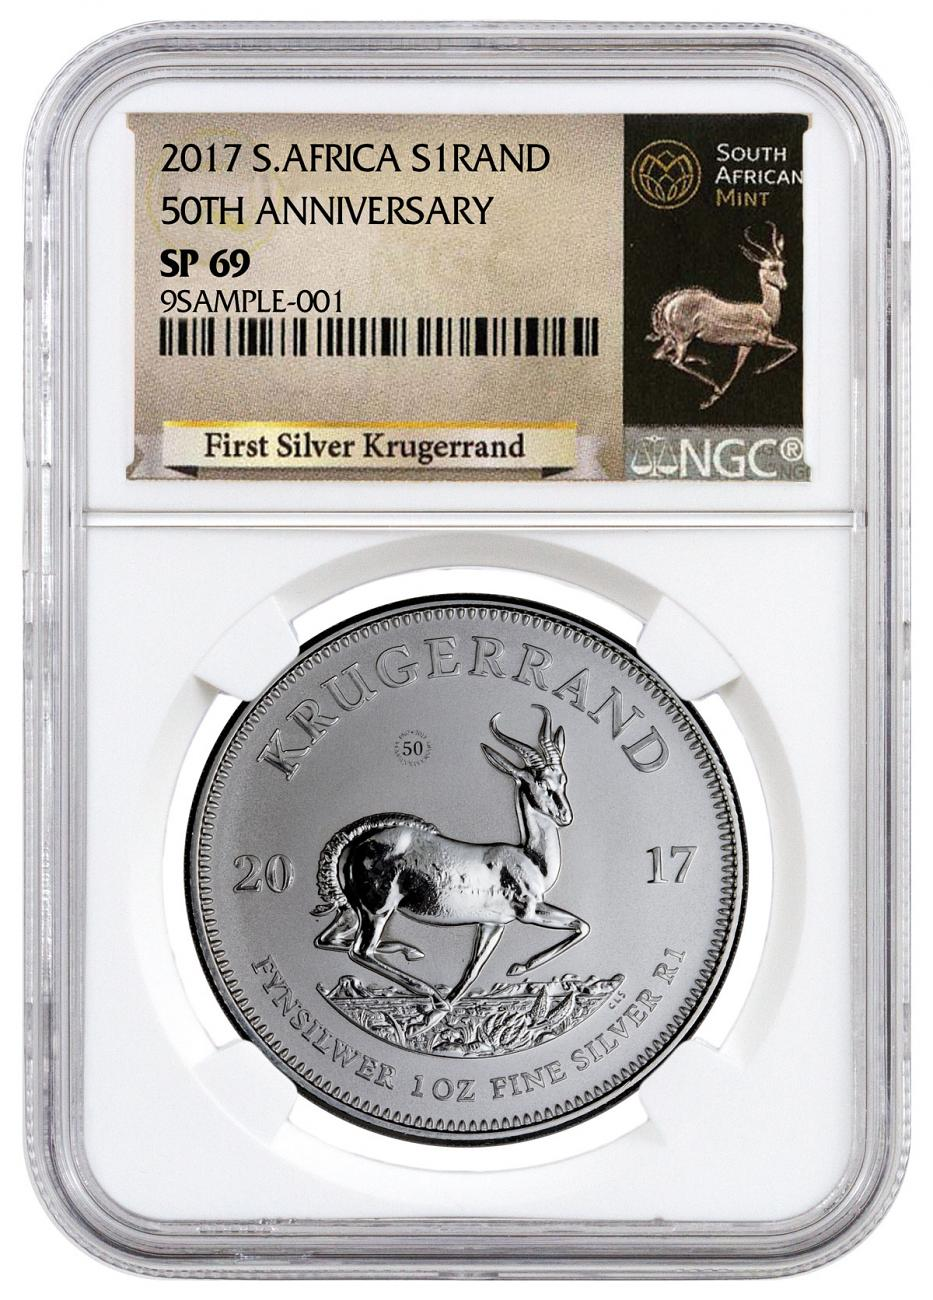 2017 South Africa 1 oz Silver Krugerrand Premium Uncirculated Coin NGC SP69 (Exclusive Krugerrand Label)